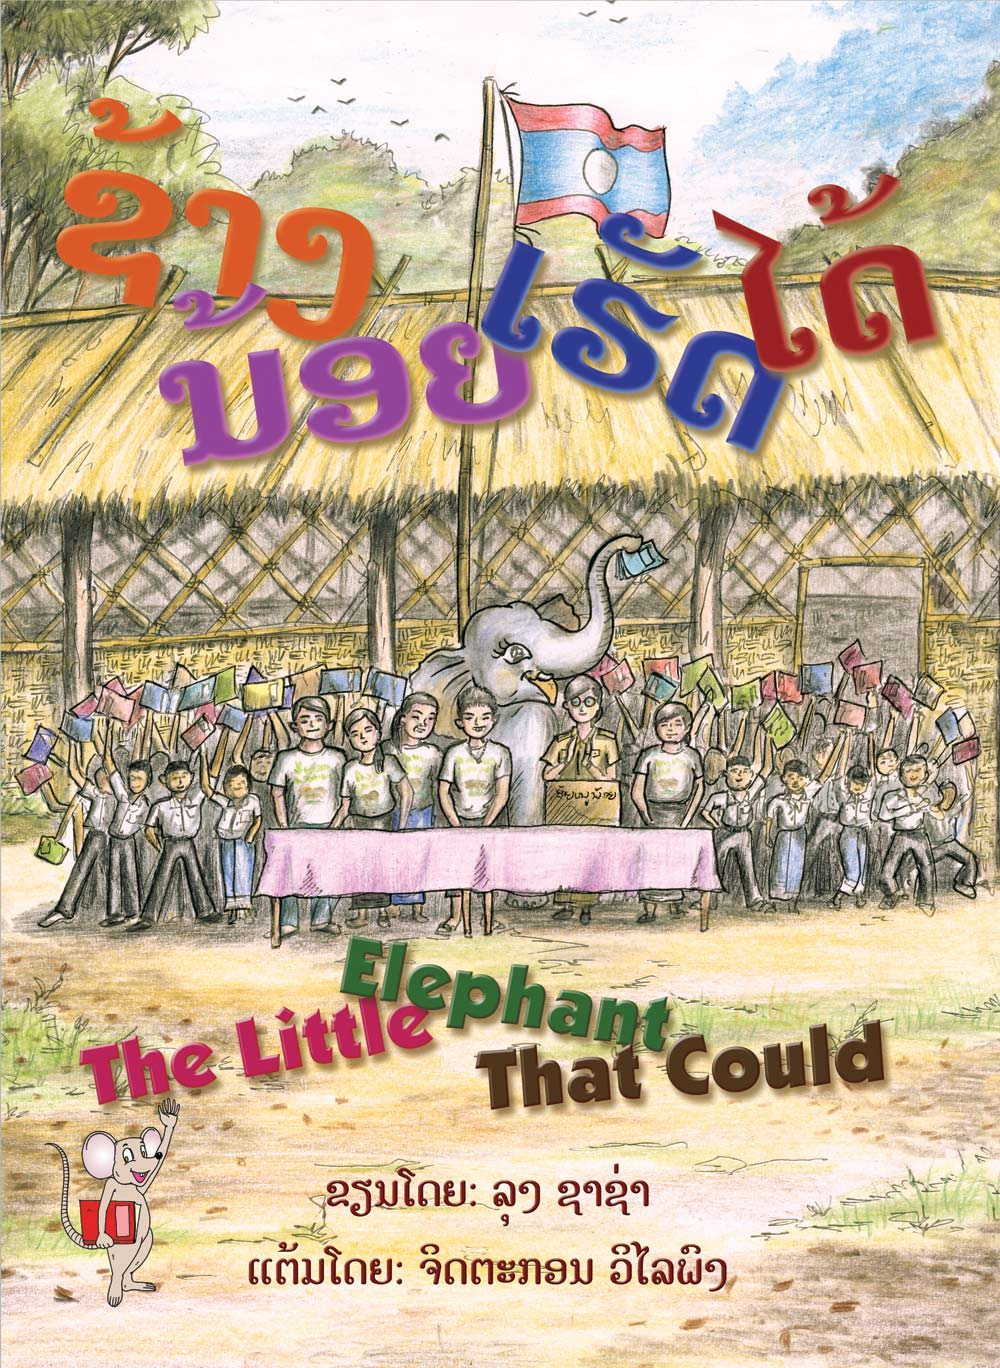 The Little Elephant That Could large book cover, published in Lao and English